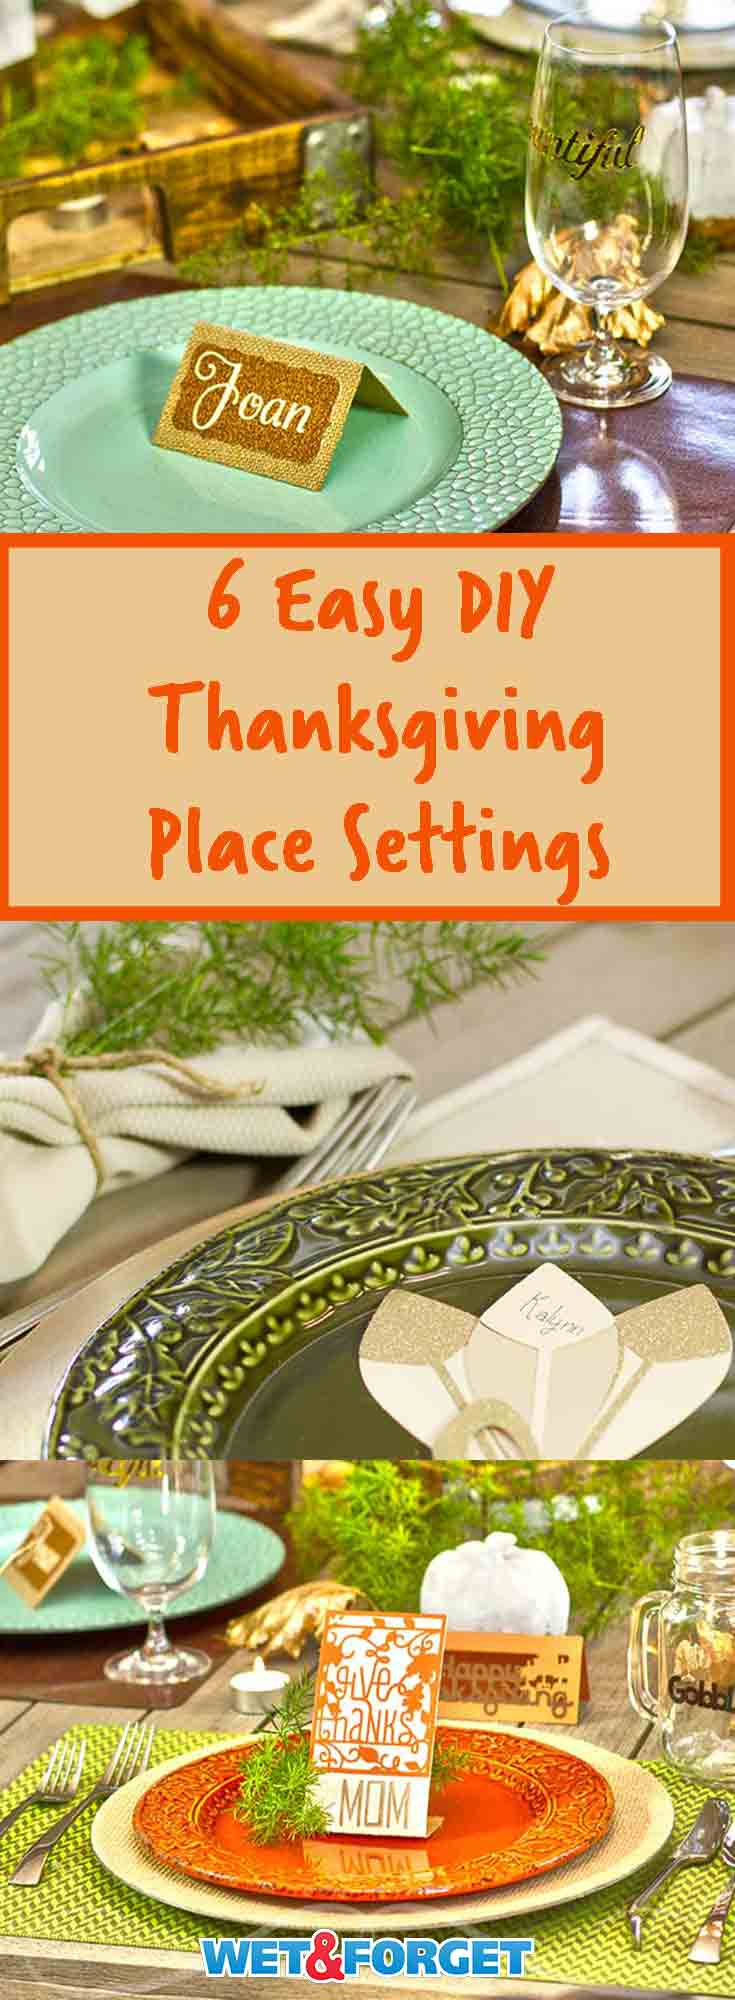 Decorating your Thanksgiving table can be difficult and time consuming. We gathered 6 different place setting ideas for you to use on your Thanksgiving table this year. Our quick and easy tutorials help simplify each place setting option.